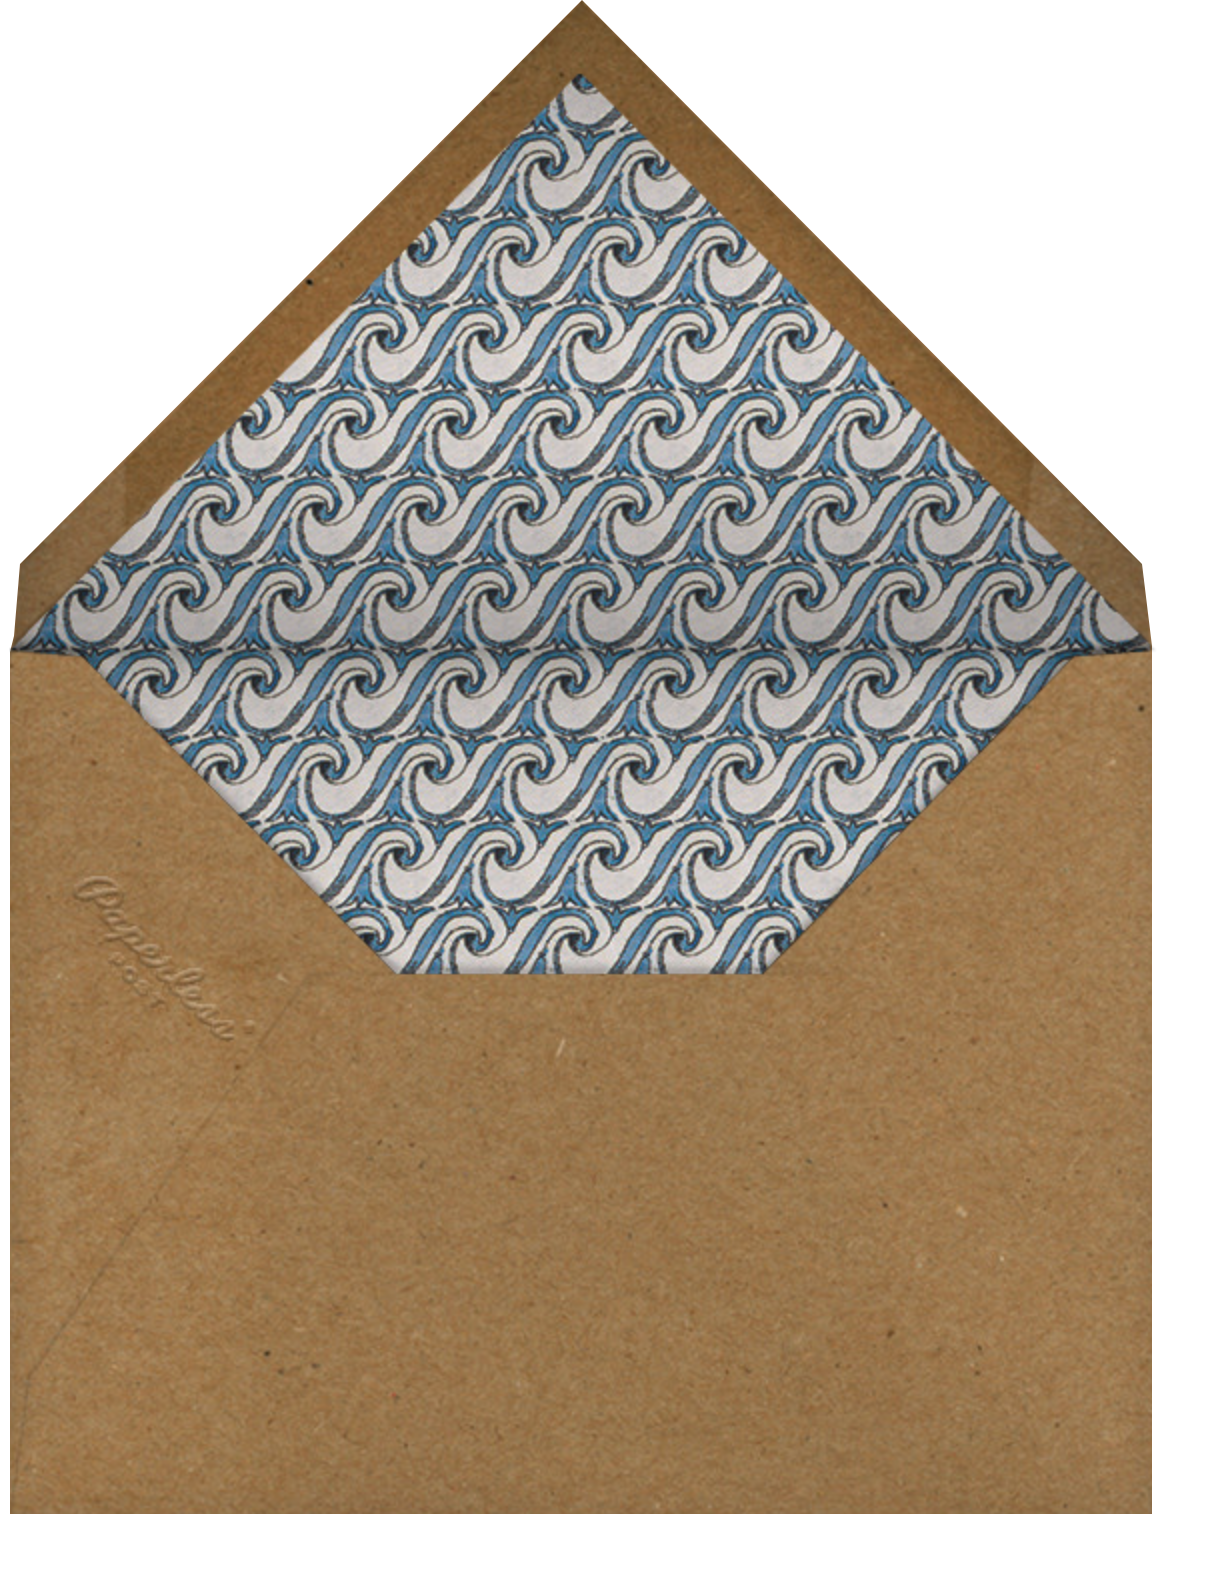 Collocated Waves - John Derian - Beach party - envelope back